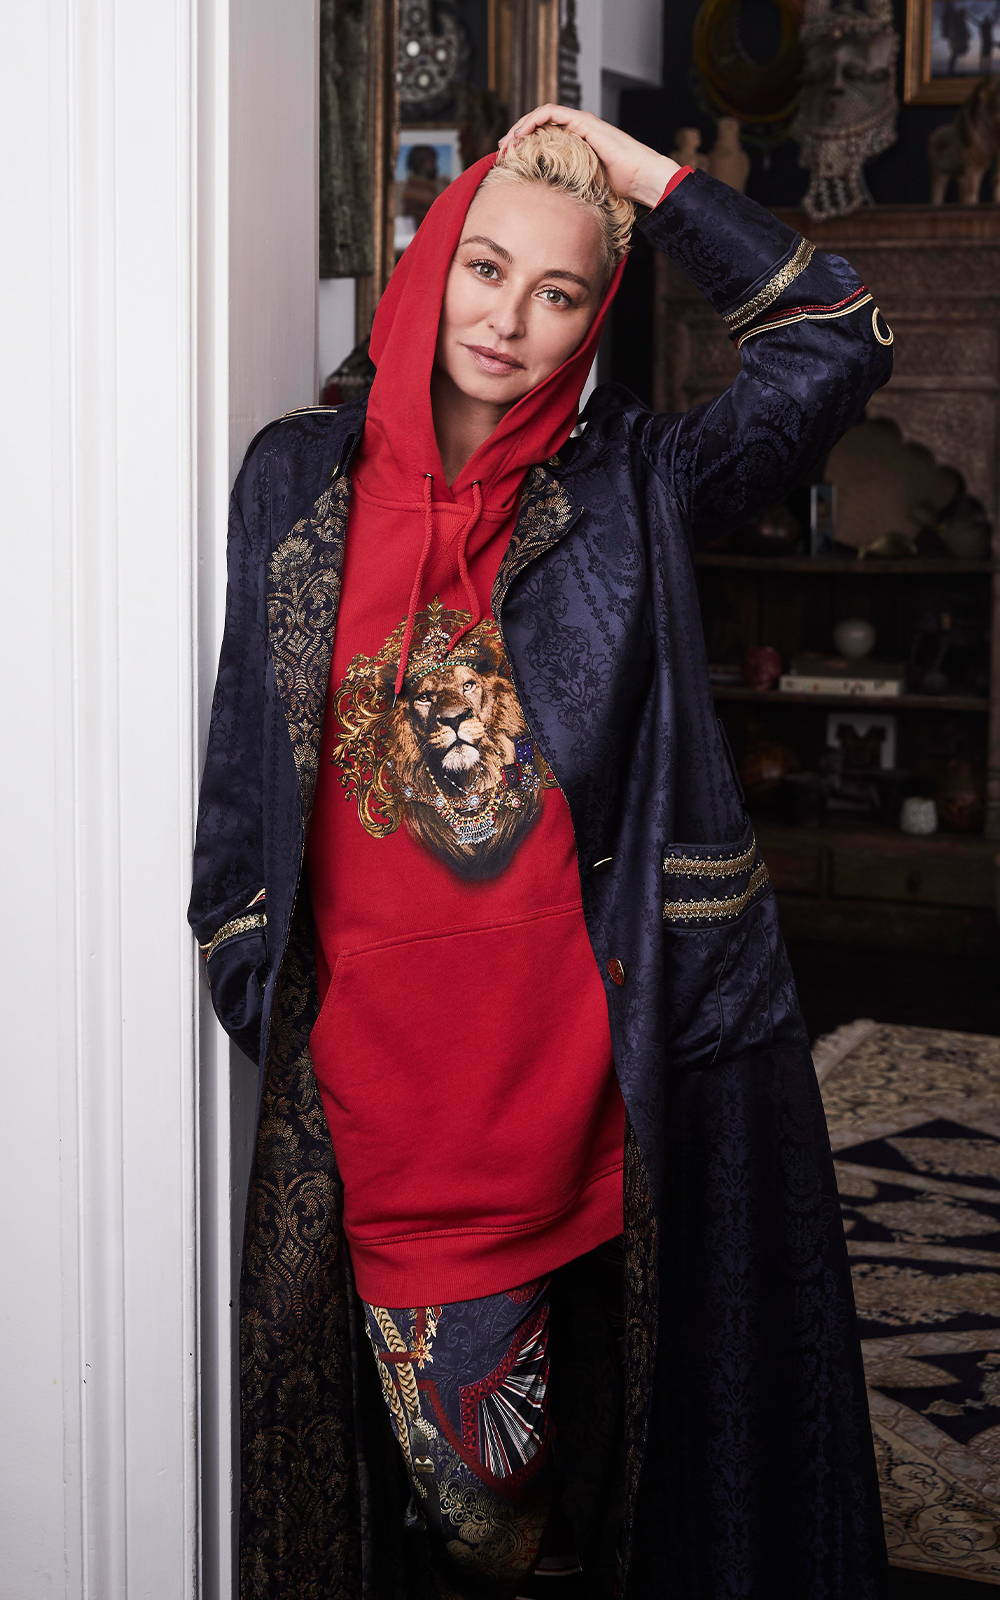 CAMILLA Franks wearing camilla red hoodie with tiger and jacket